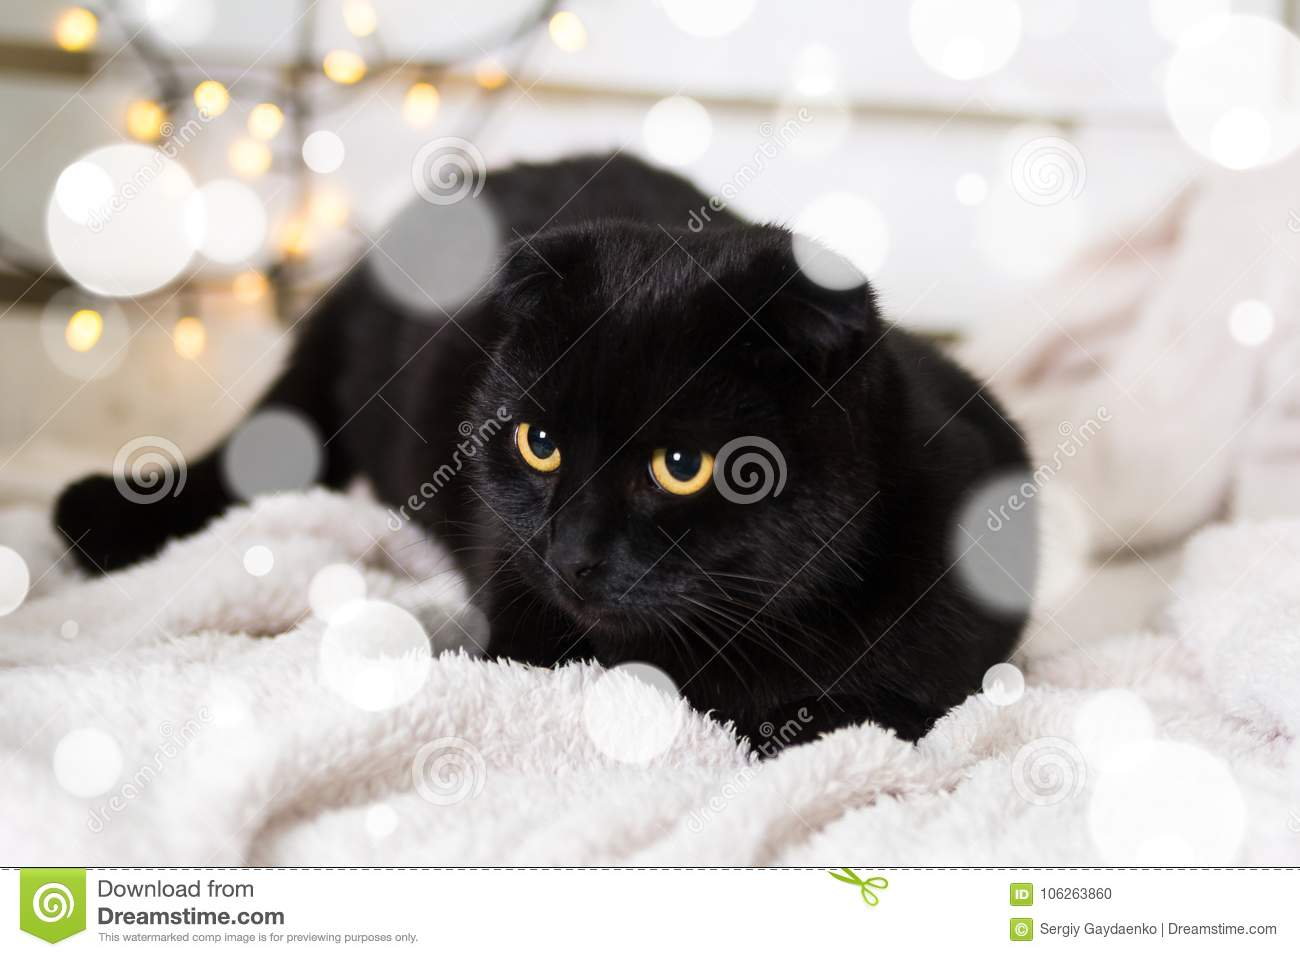 Download Black Scottish Fold Cat Wearing Christmas Costume. Year Of The Dog Concept Stock Photo & Black Scottish Fold Cat Wearing Christmas Costume. Year Of The Dog ...